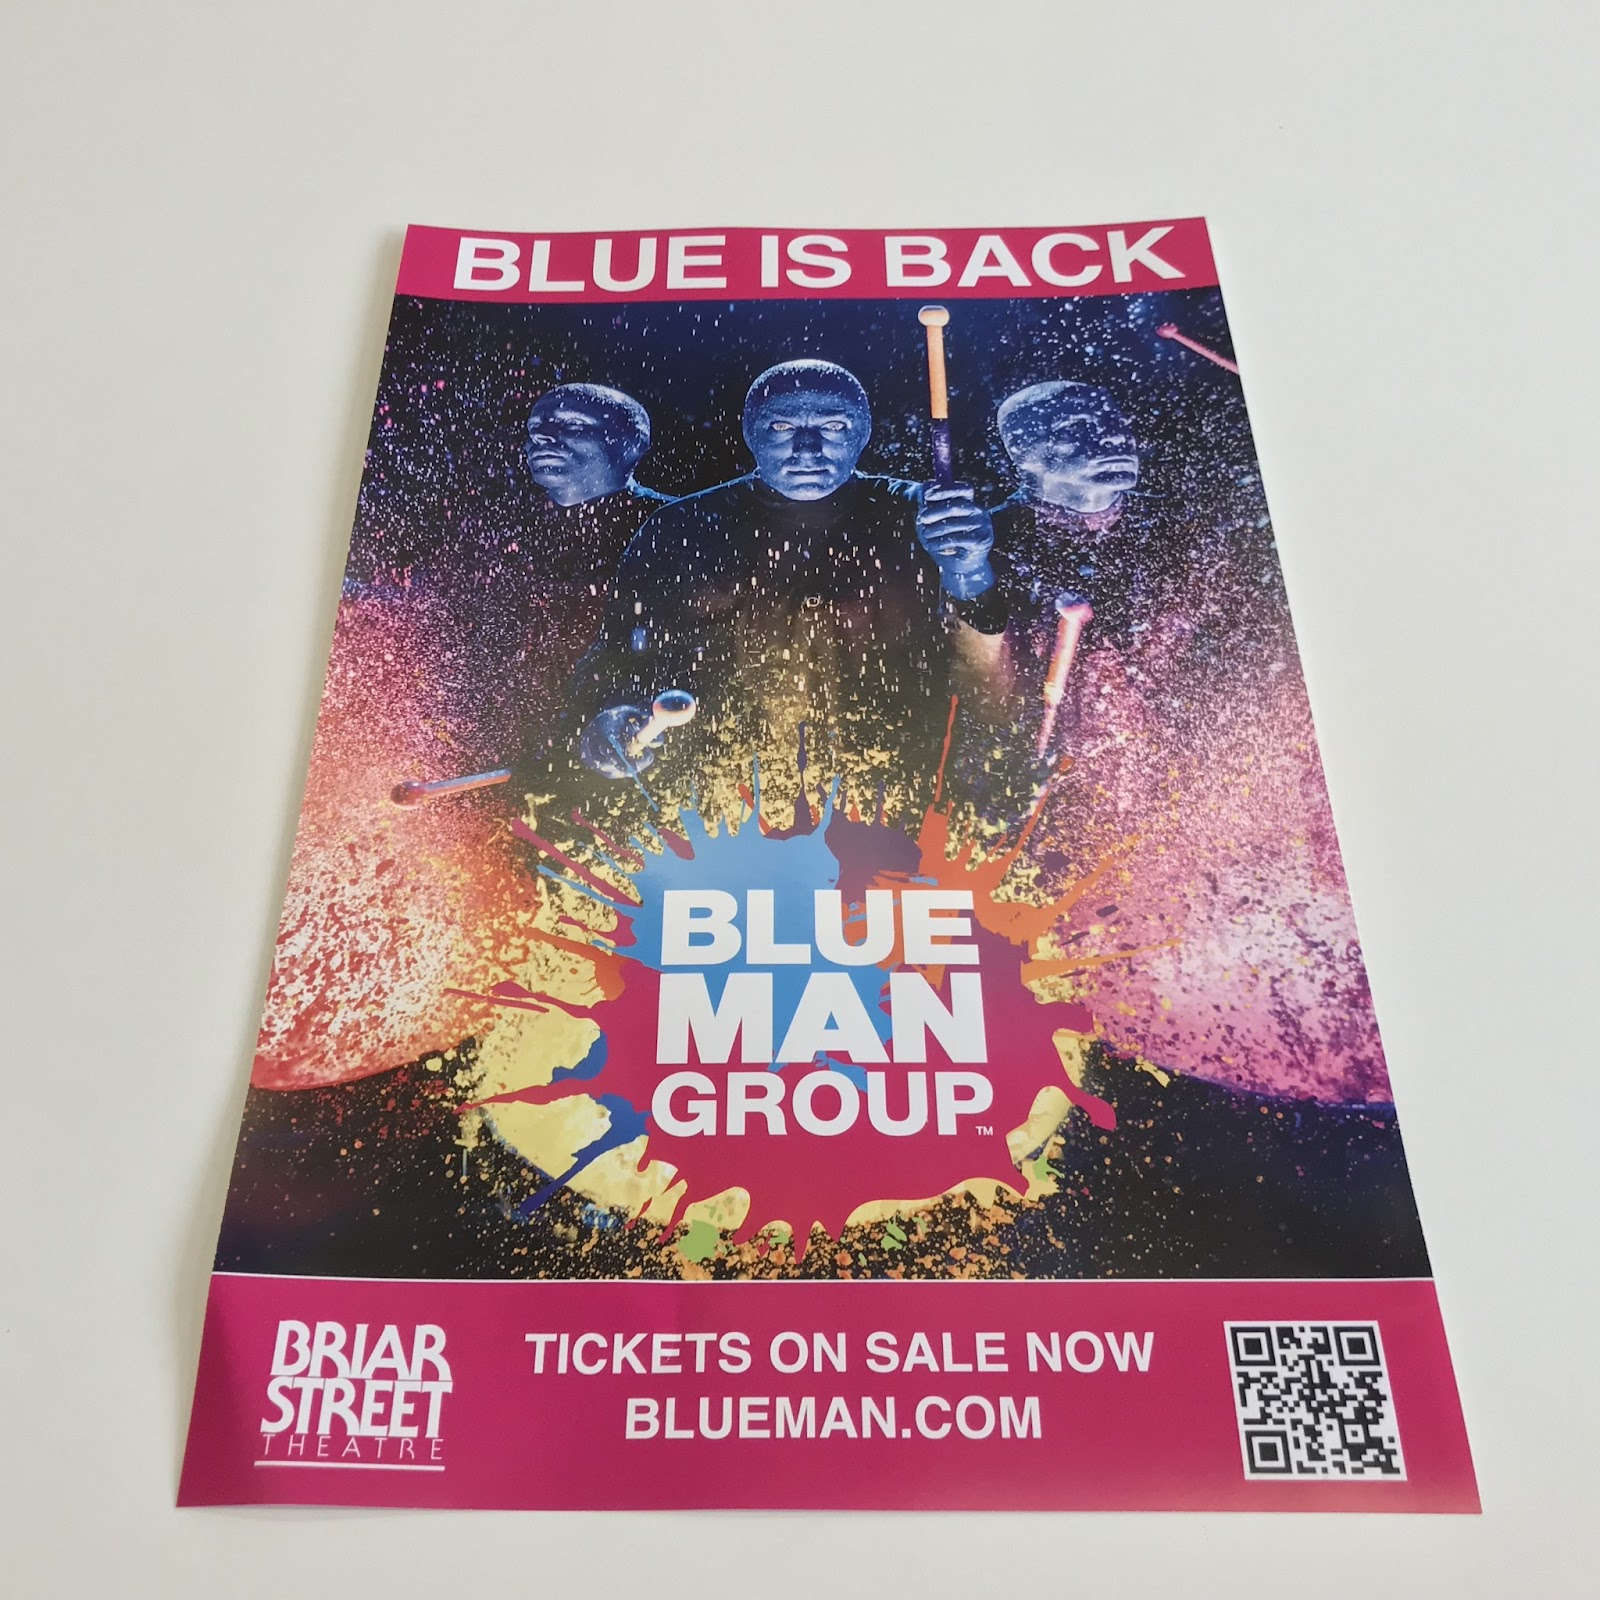 11x17 poster for Blue Man Group